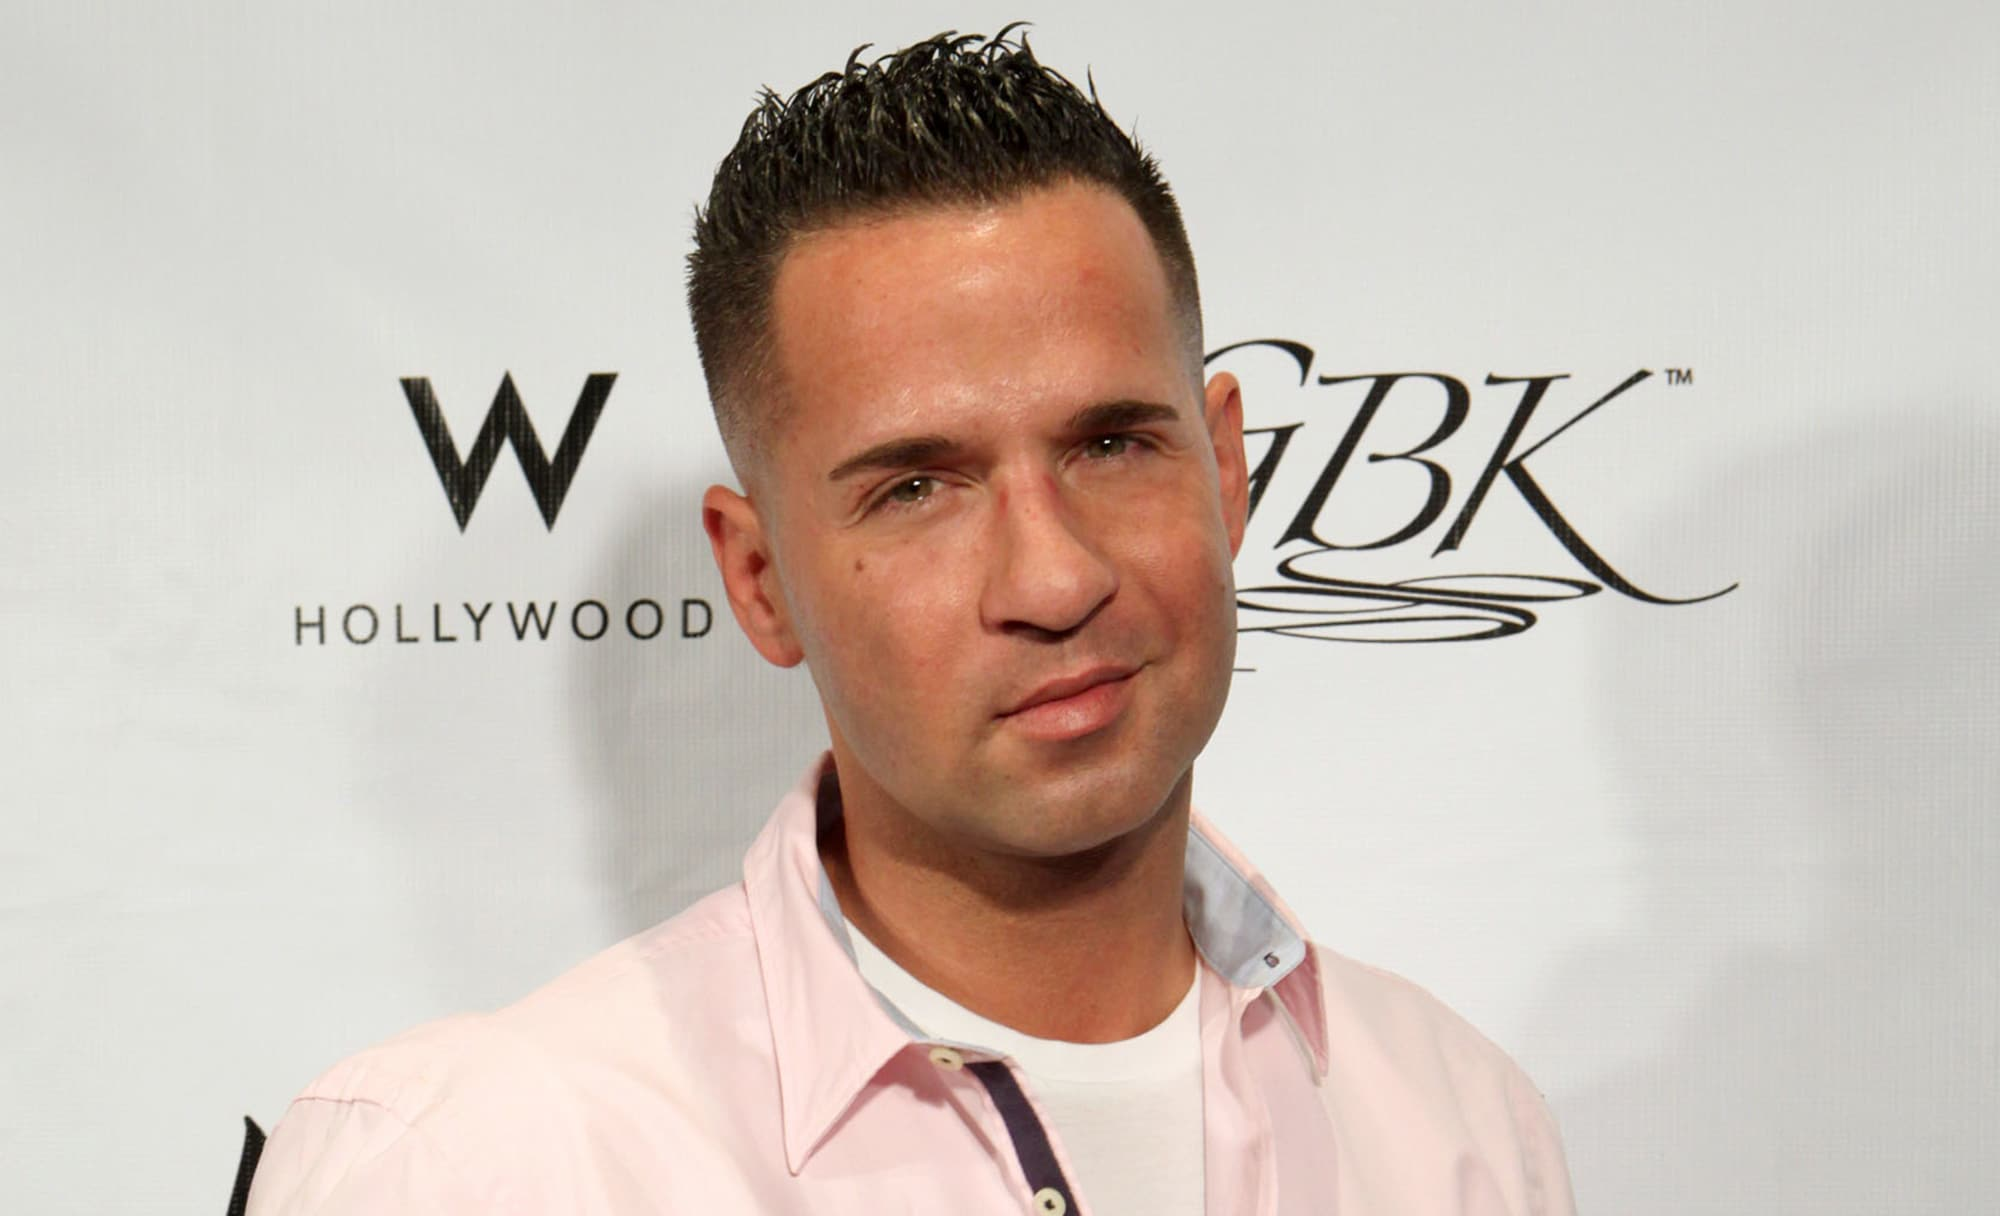 Mike The Situation from Jersey Shore